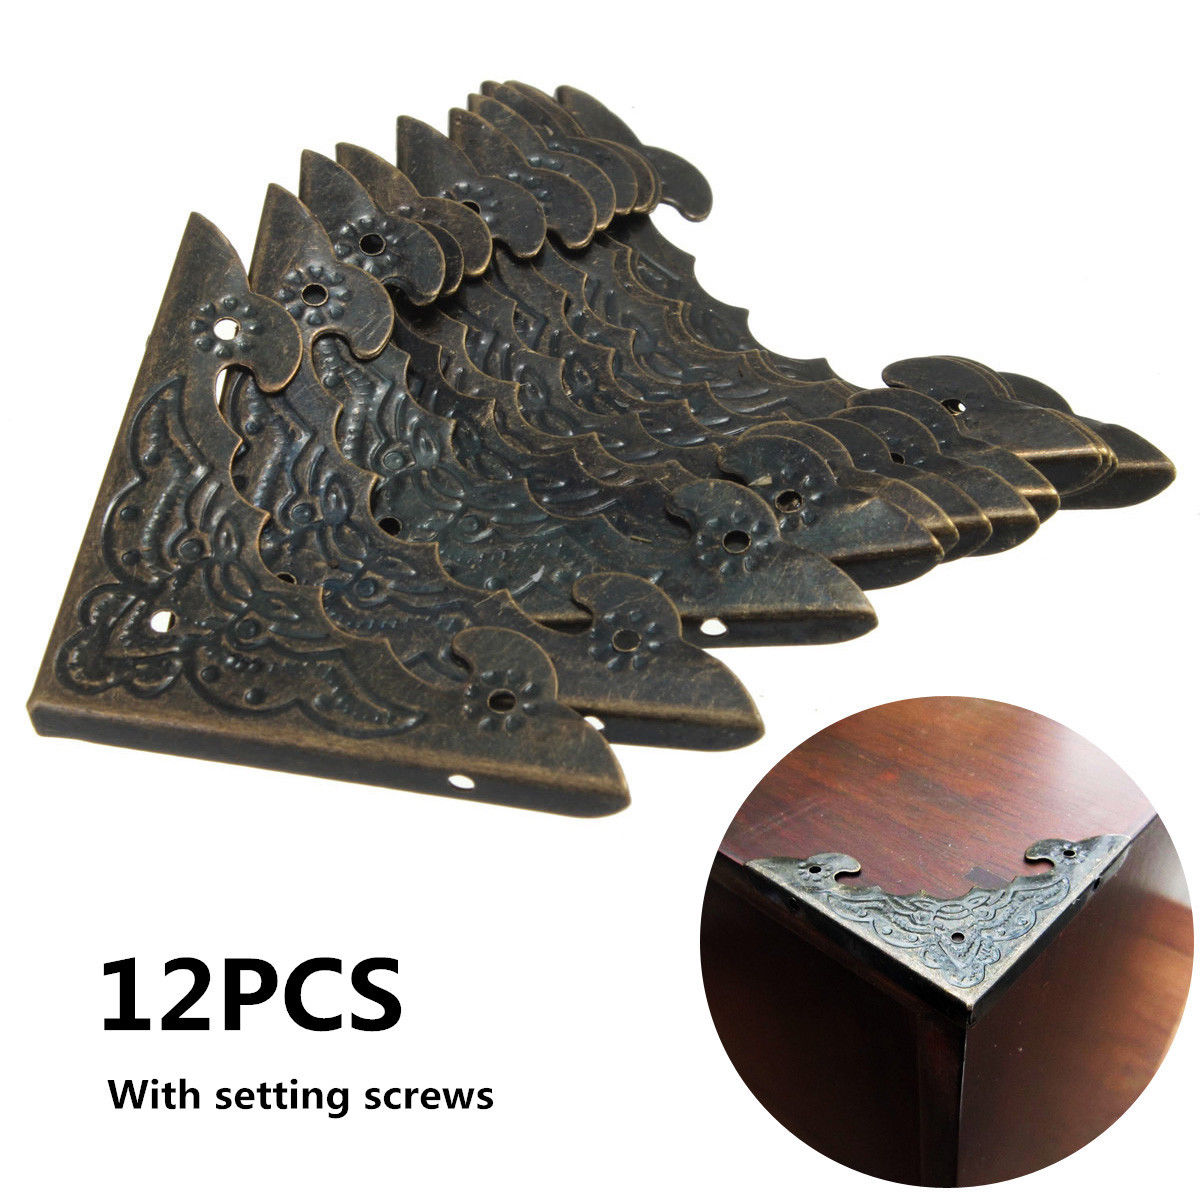 12pcs Antique Brass Jewelry Chest Wine Case Flowers And Birds Wooden Box Decorative Feet Leg Desk Table Corner Protector Guard